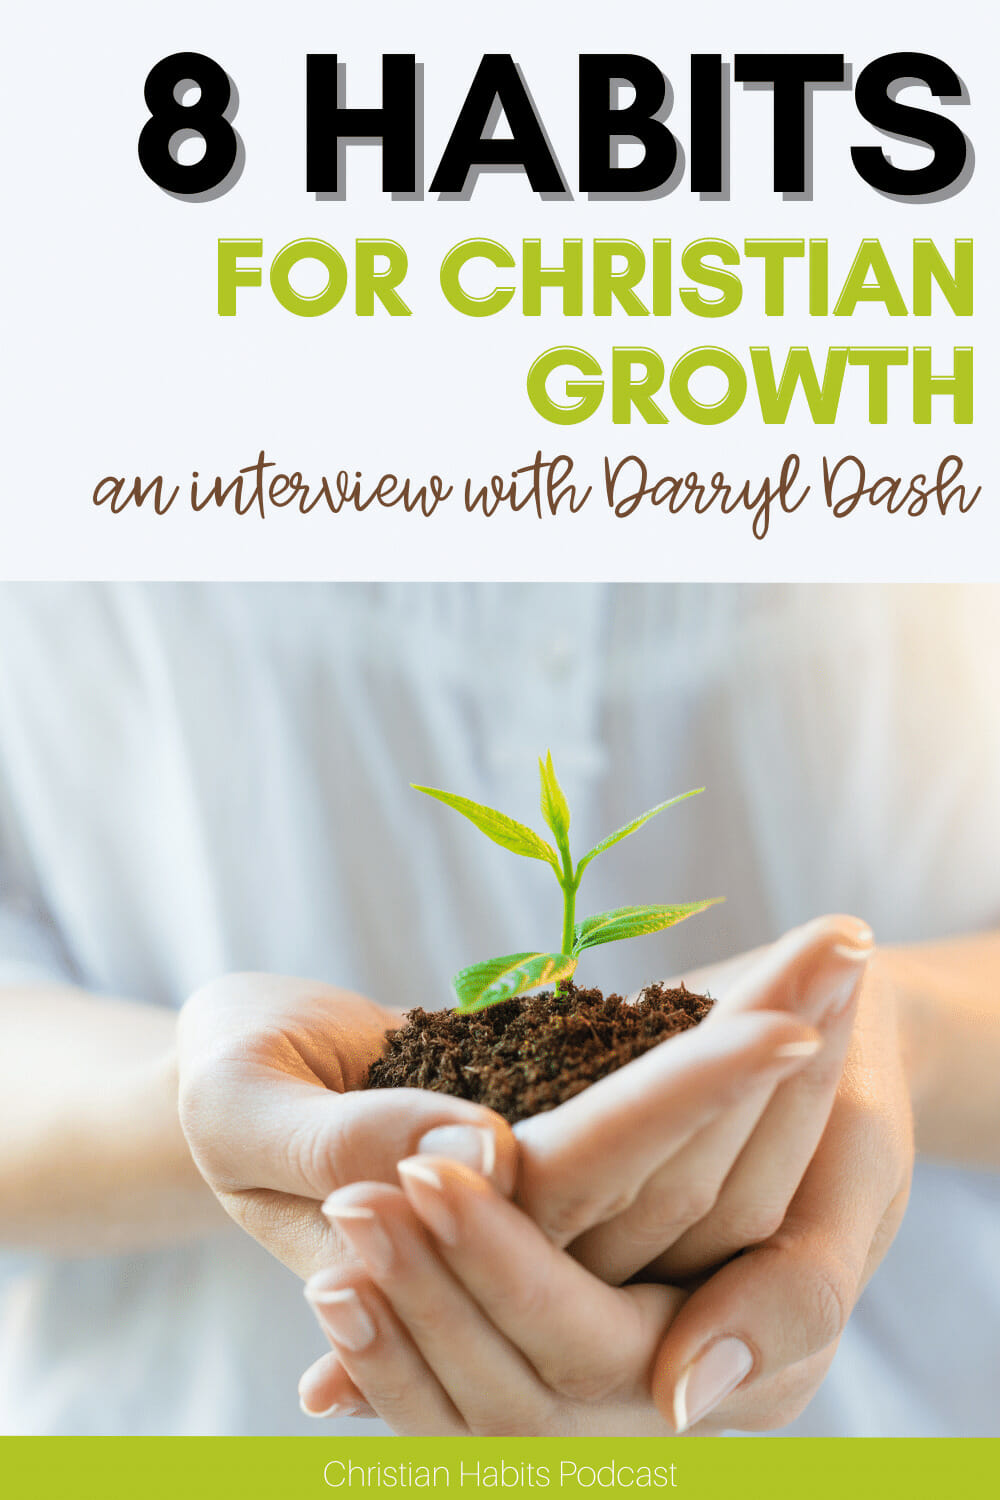 hands holding a growing plant   Darryl Dash: 8 habits for Christian growth